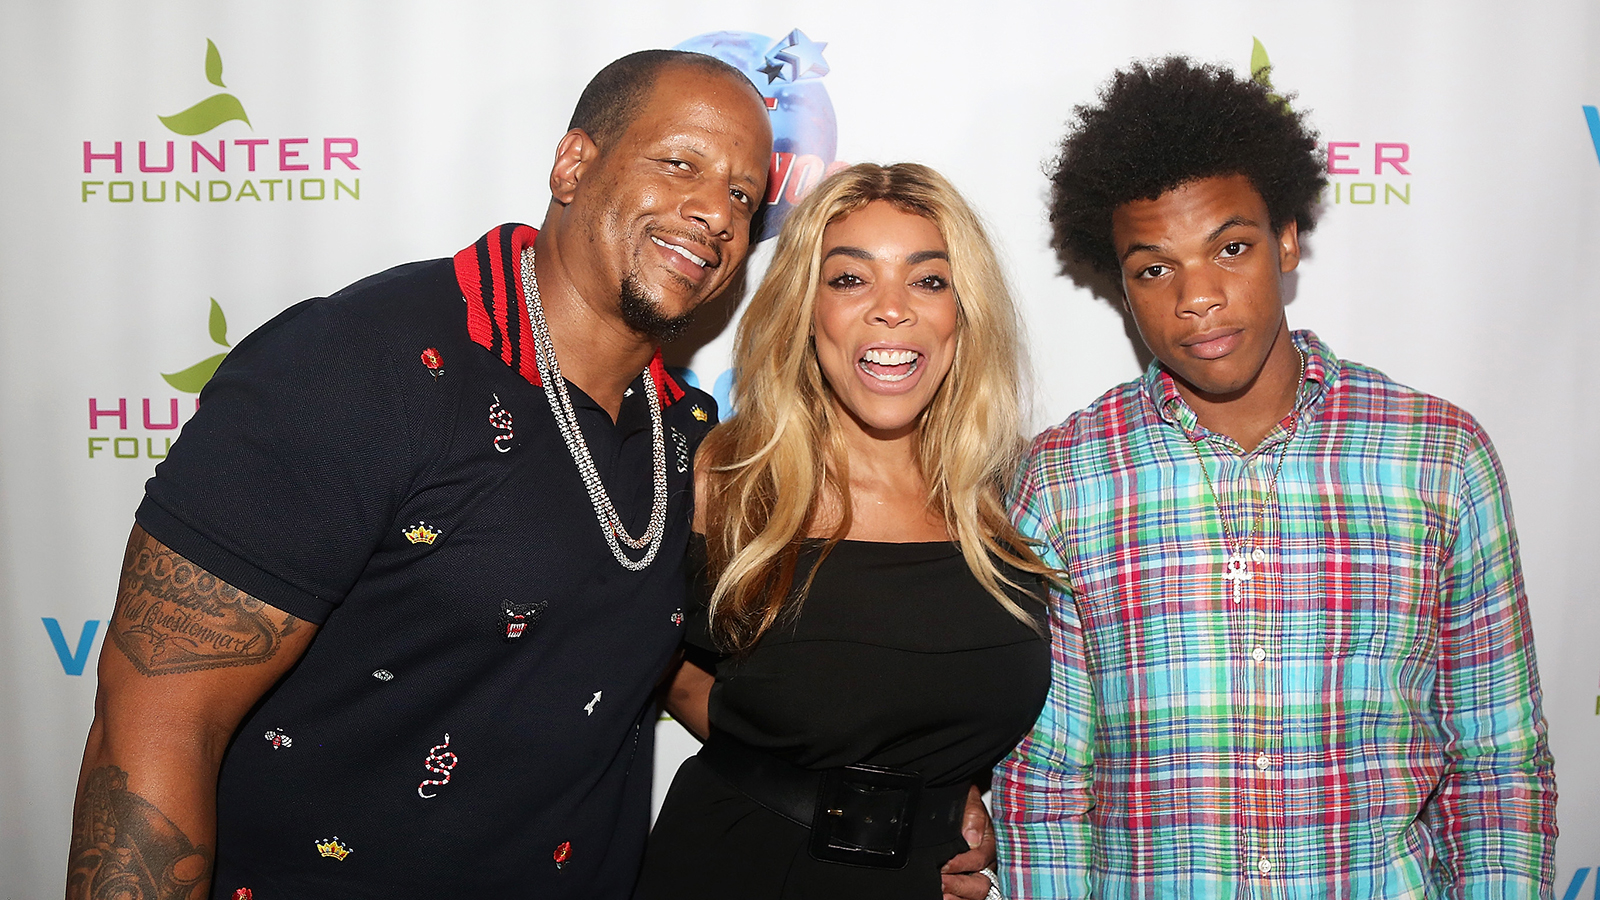 wendy-williams-pleads-with-her-son-not-to-get-caught-in-the-middle-after-he-assaulted-his-dad